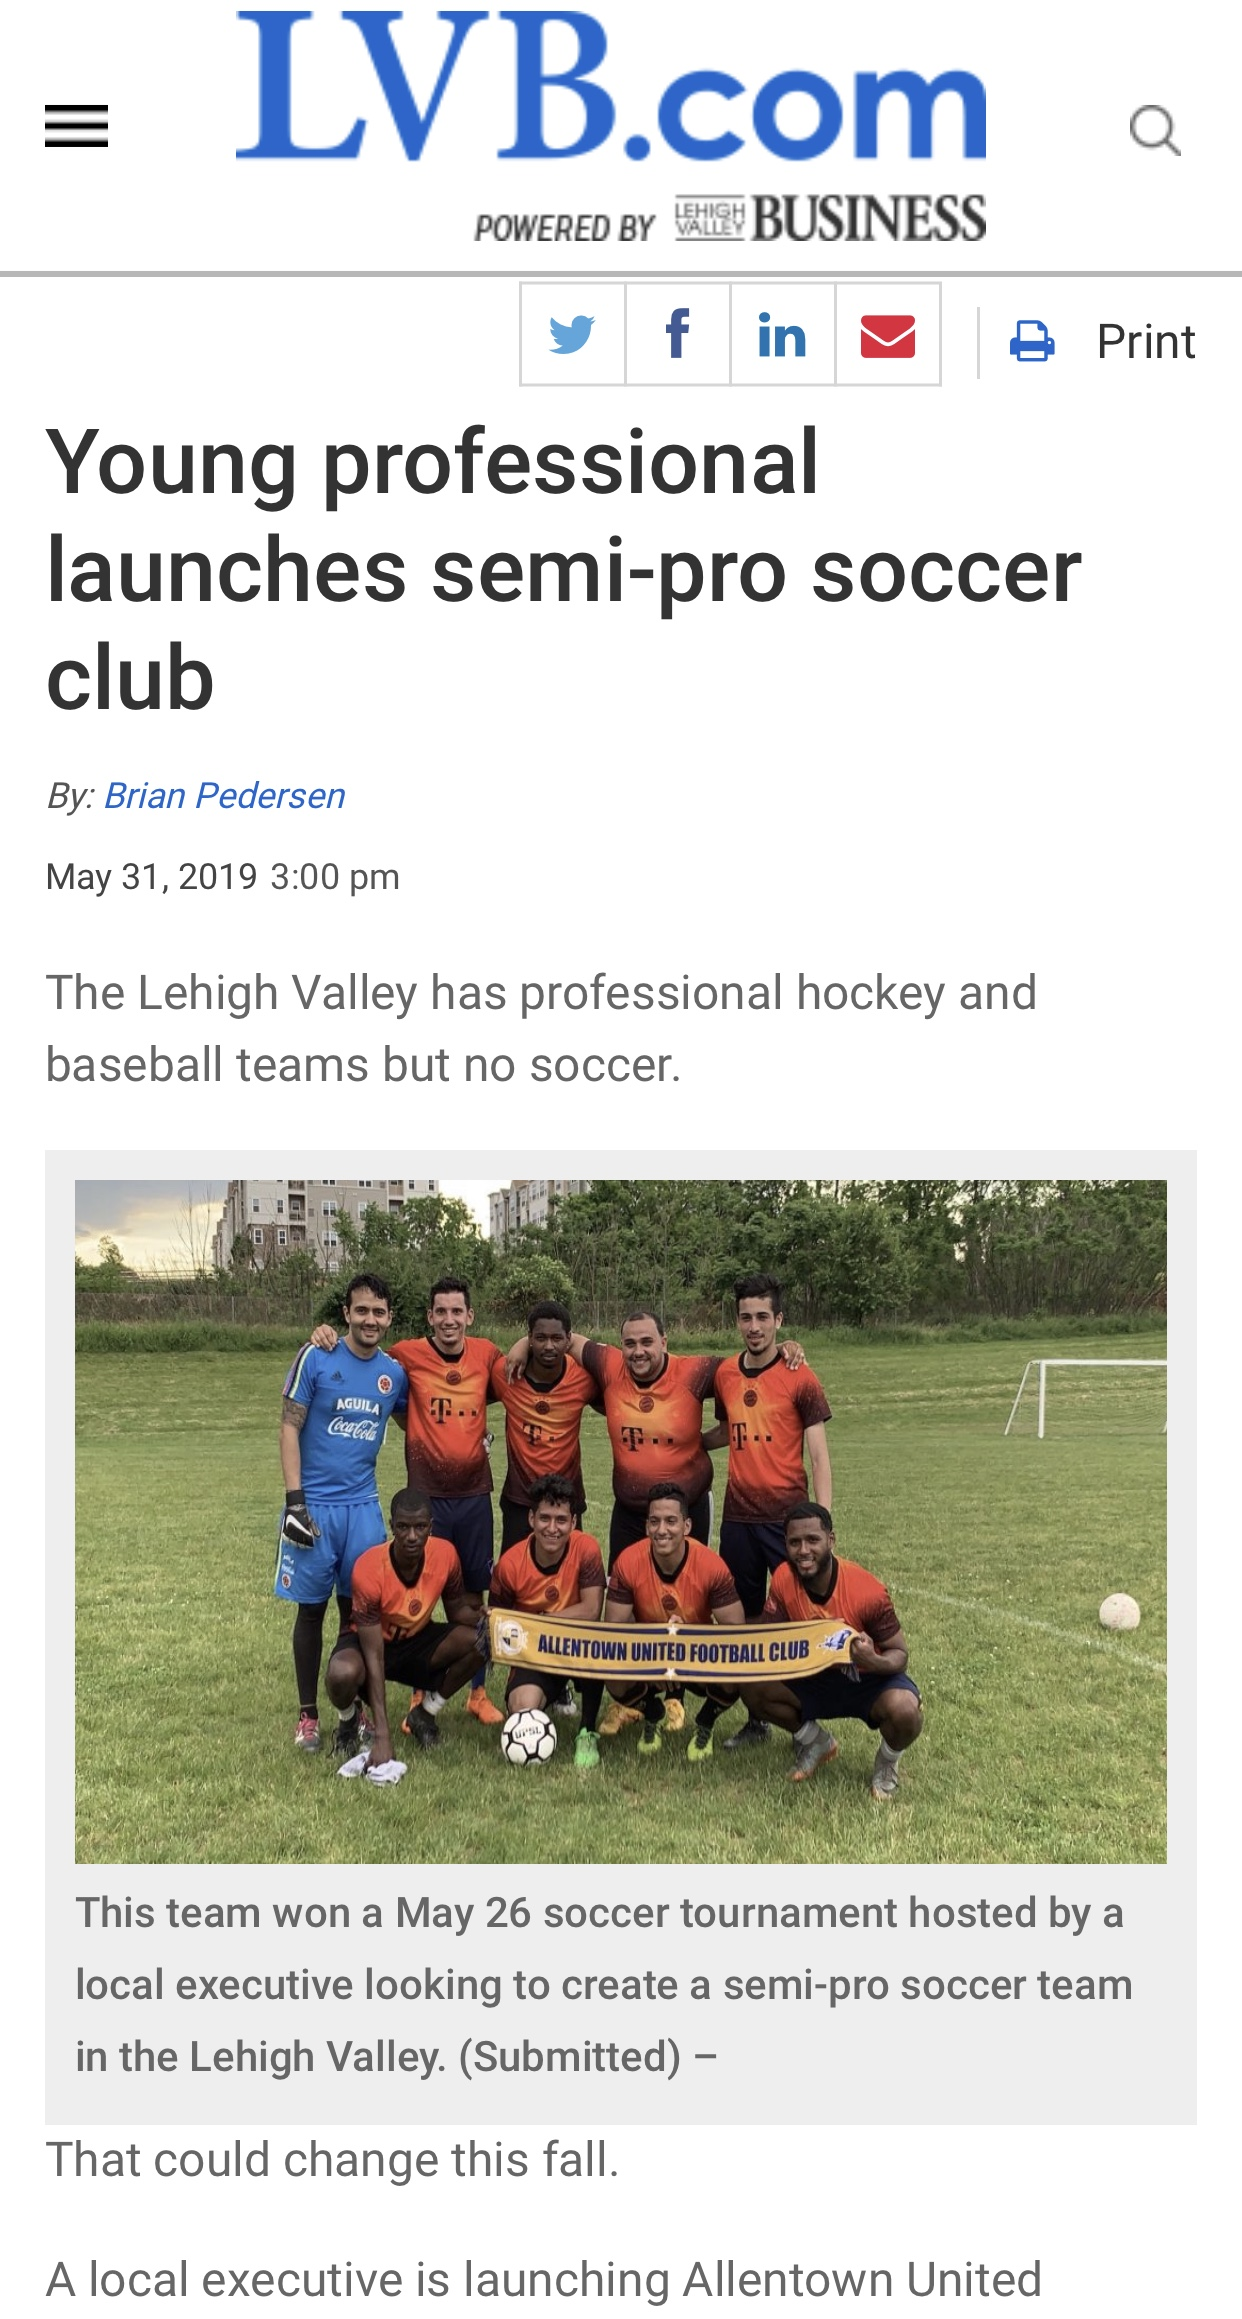 LVB.com: Young professional launches semi-pro soccer club